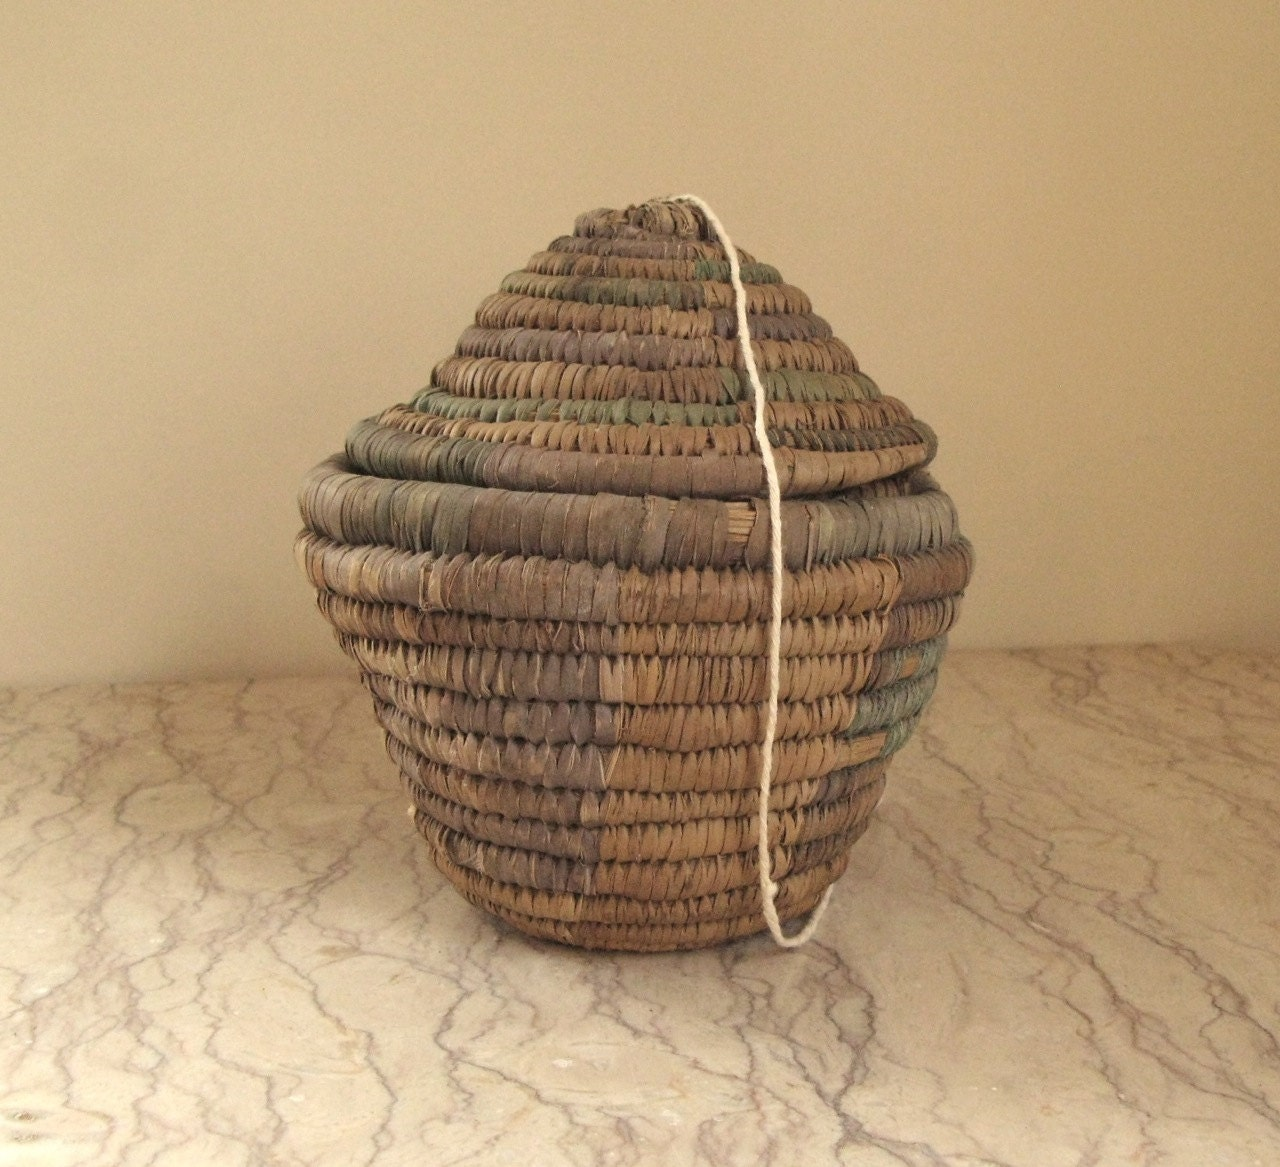 How To Weave A String Basket : Vintage woven straw string basket